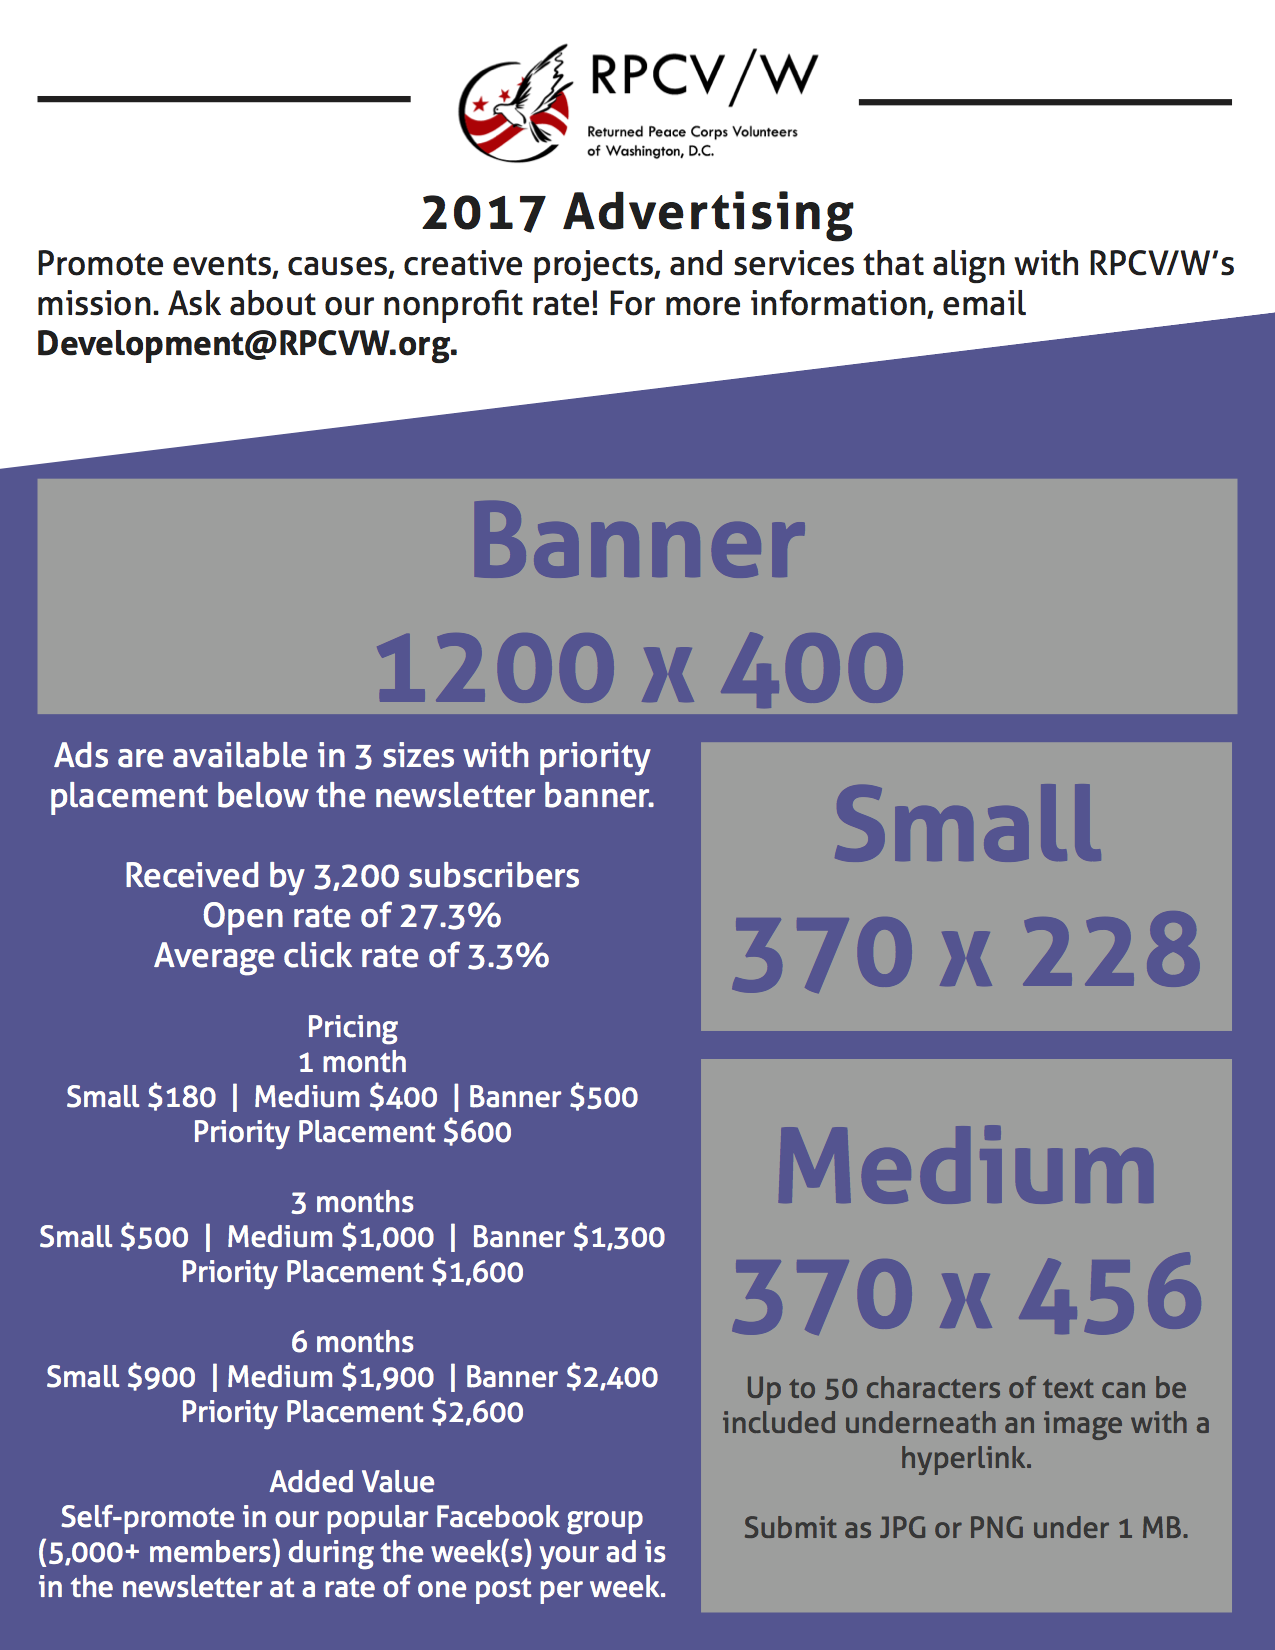 RPCV_W_2017_Advertising_and_Sponsorship_Updated_3.21.17.png